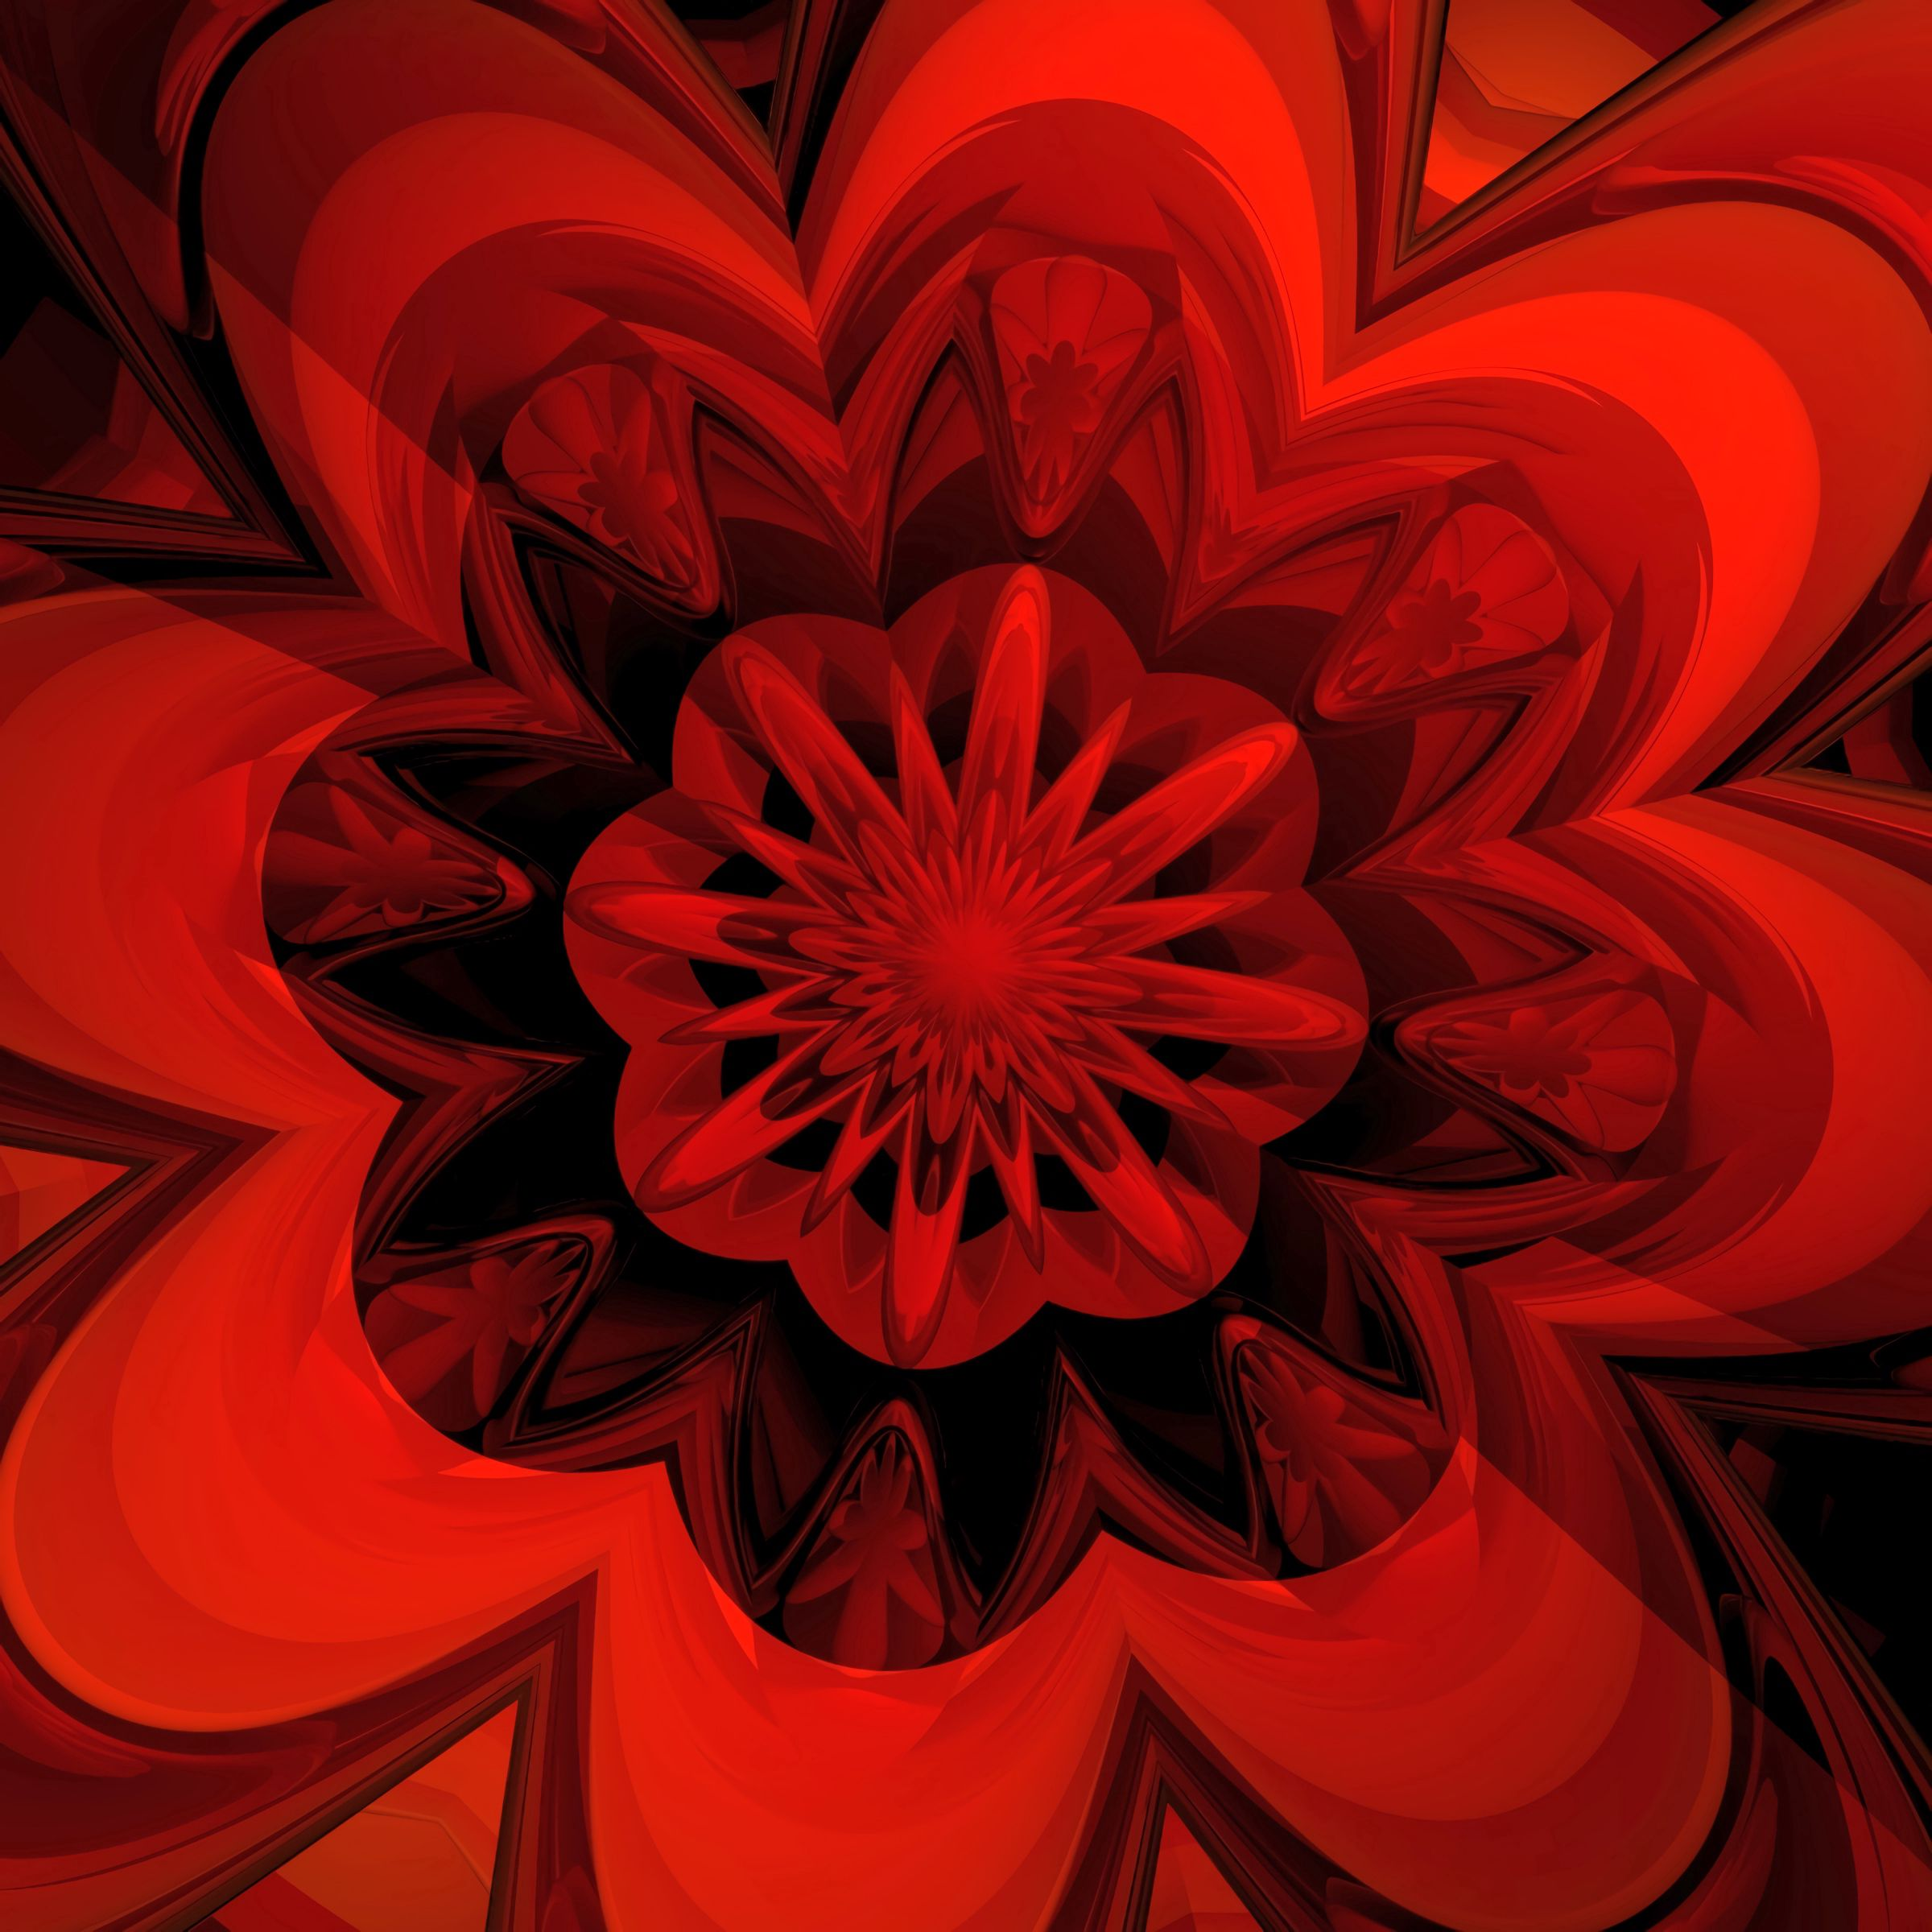 135076 download wallpaper Abstract, Fractal, Flower, Digital screensavers and pictures for free